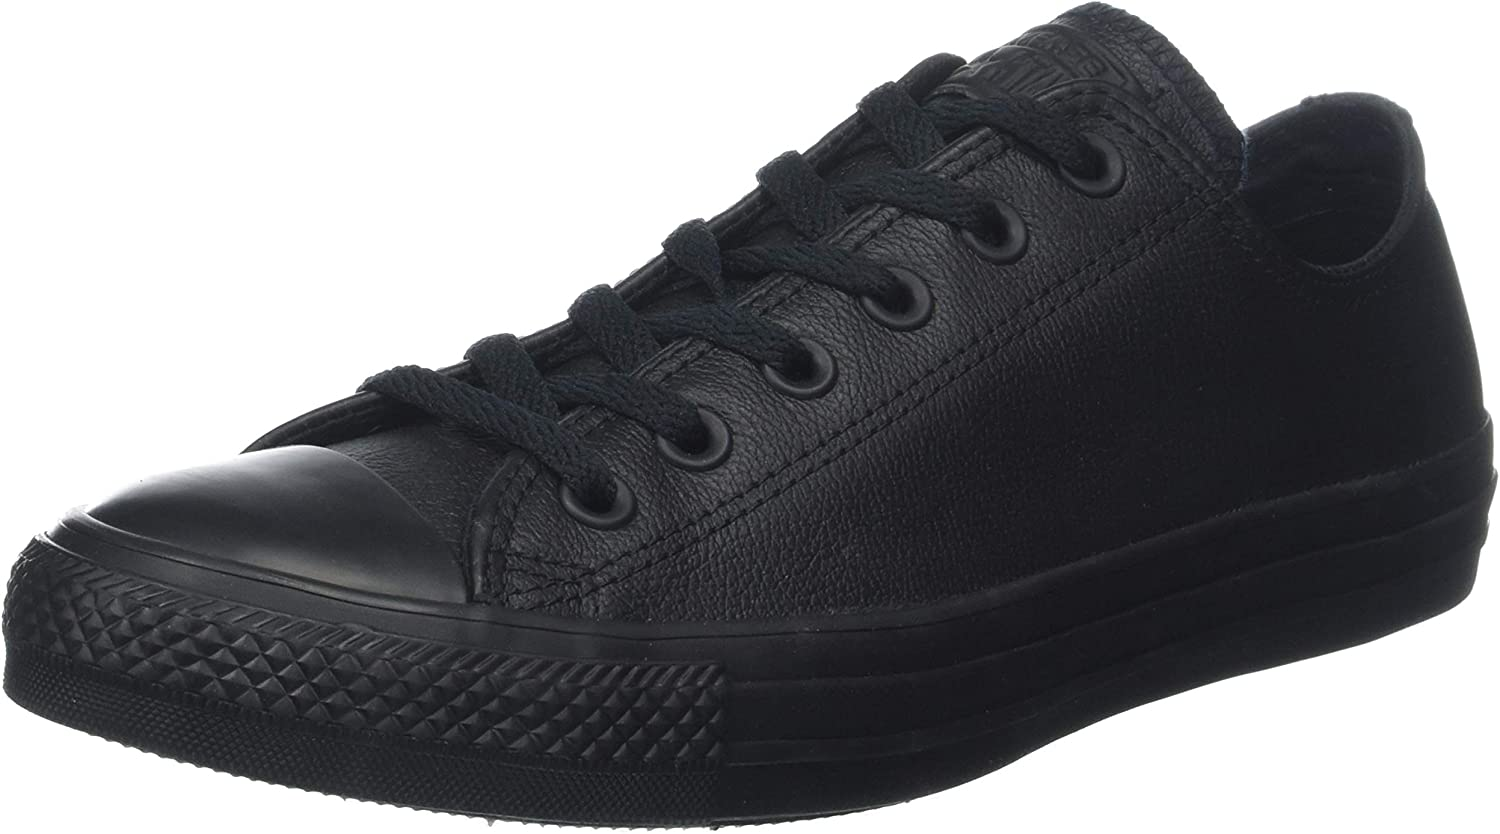 Converse All Star Ox Leather, Unisex Adults' All Star Ox Leather